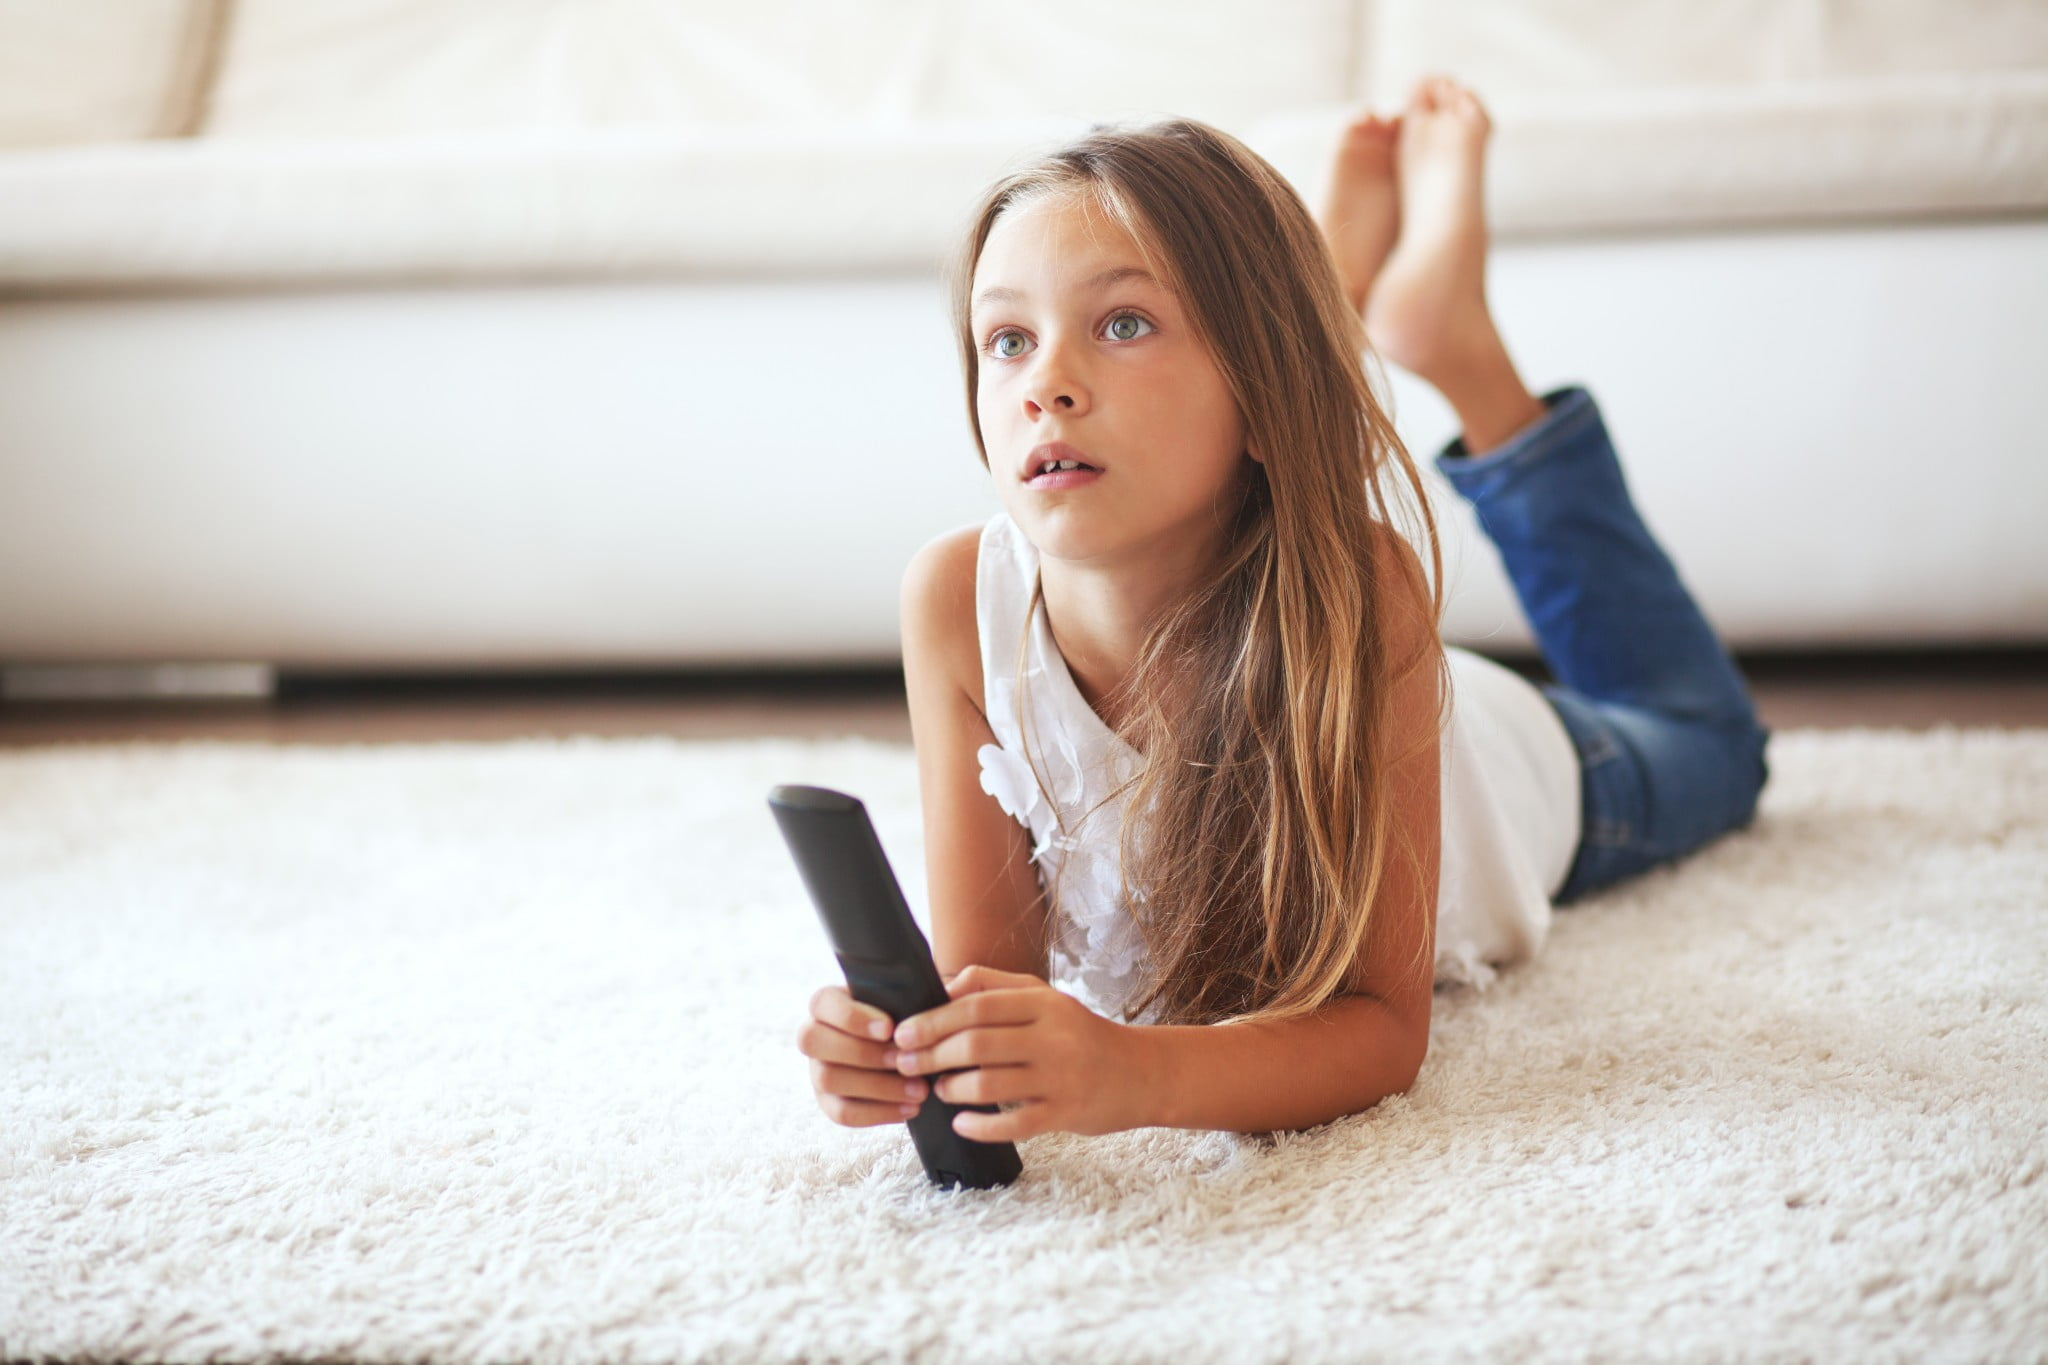 Childhood Inactivity Linked Early Onset Of Chronic Disease